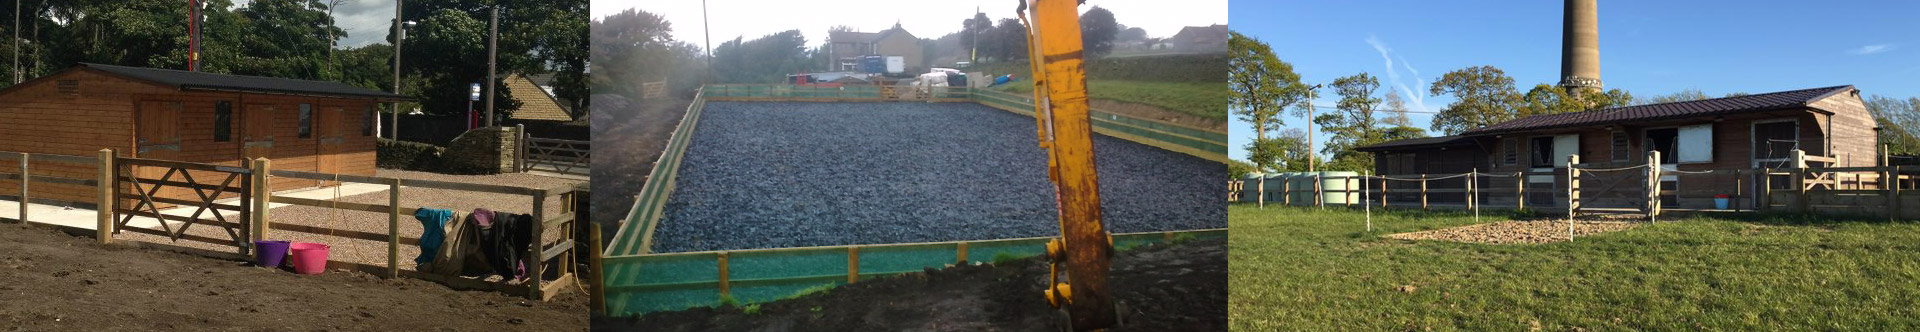 Equestrian Groundworks & Stable Builders West Yorkshire